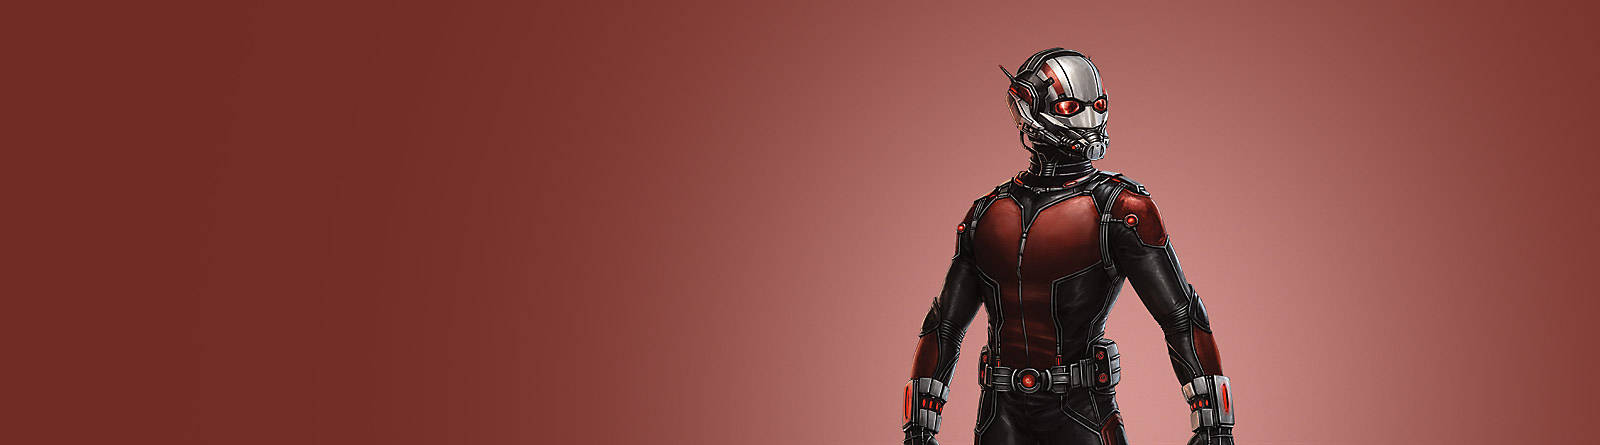 Ant-Man Discover the exciting world of Marvel with a range of Ant-Man merchandise, including toys, figures, accessories and more